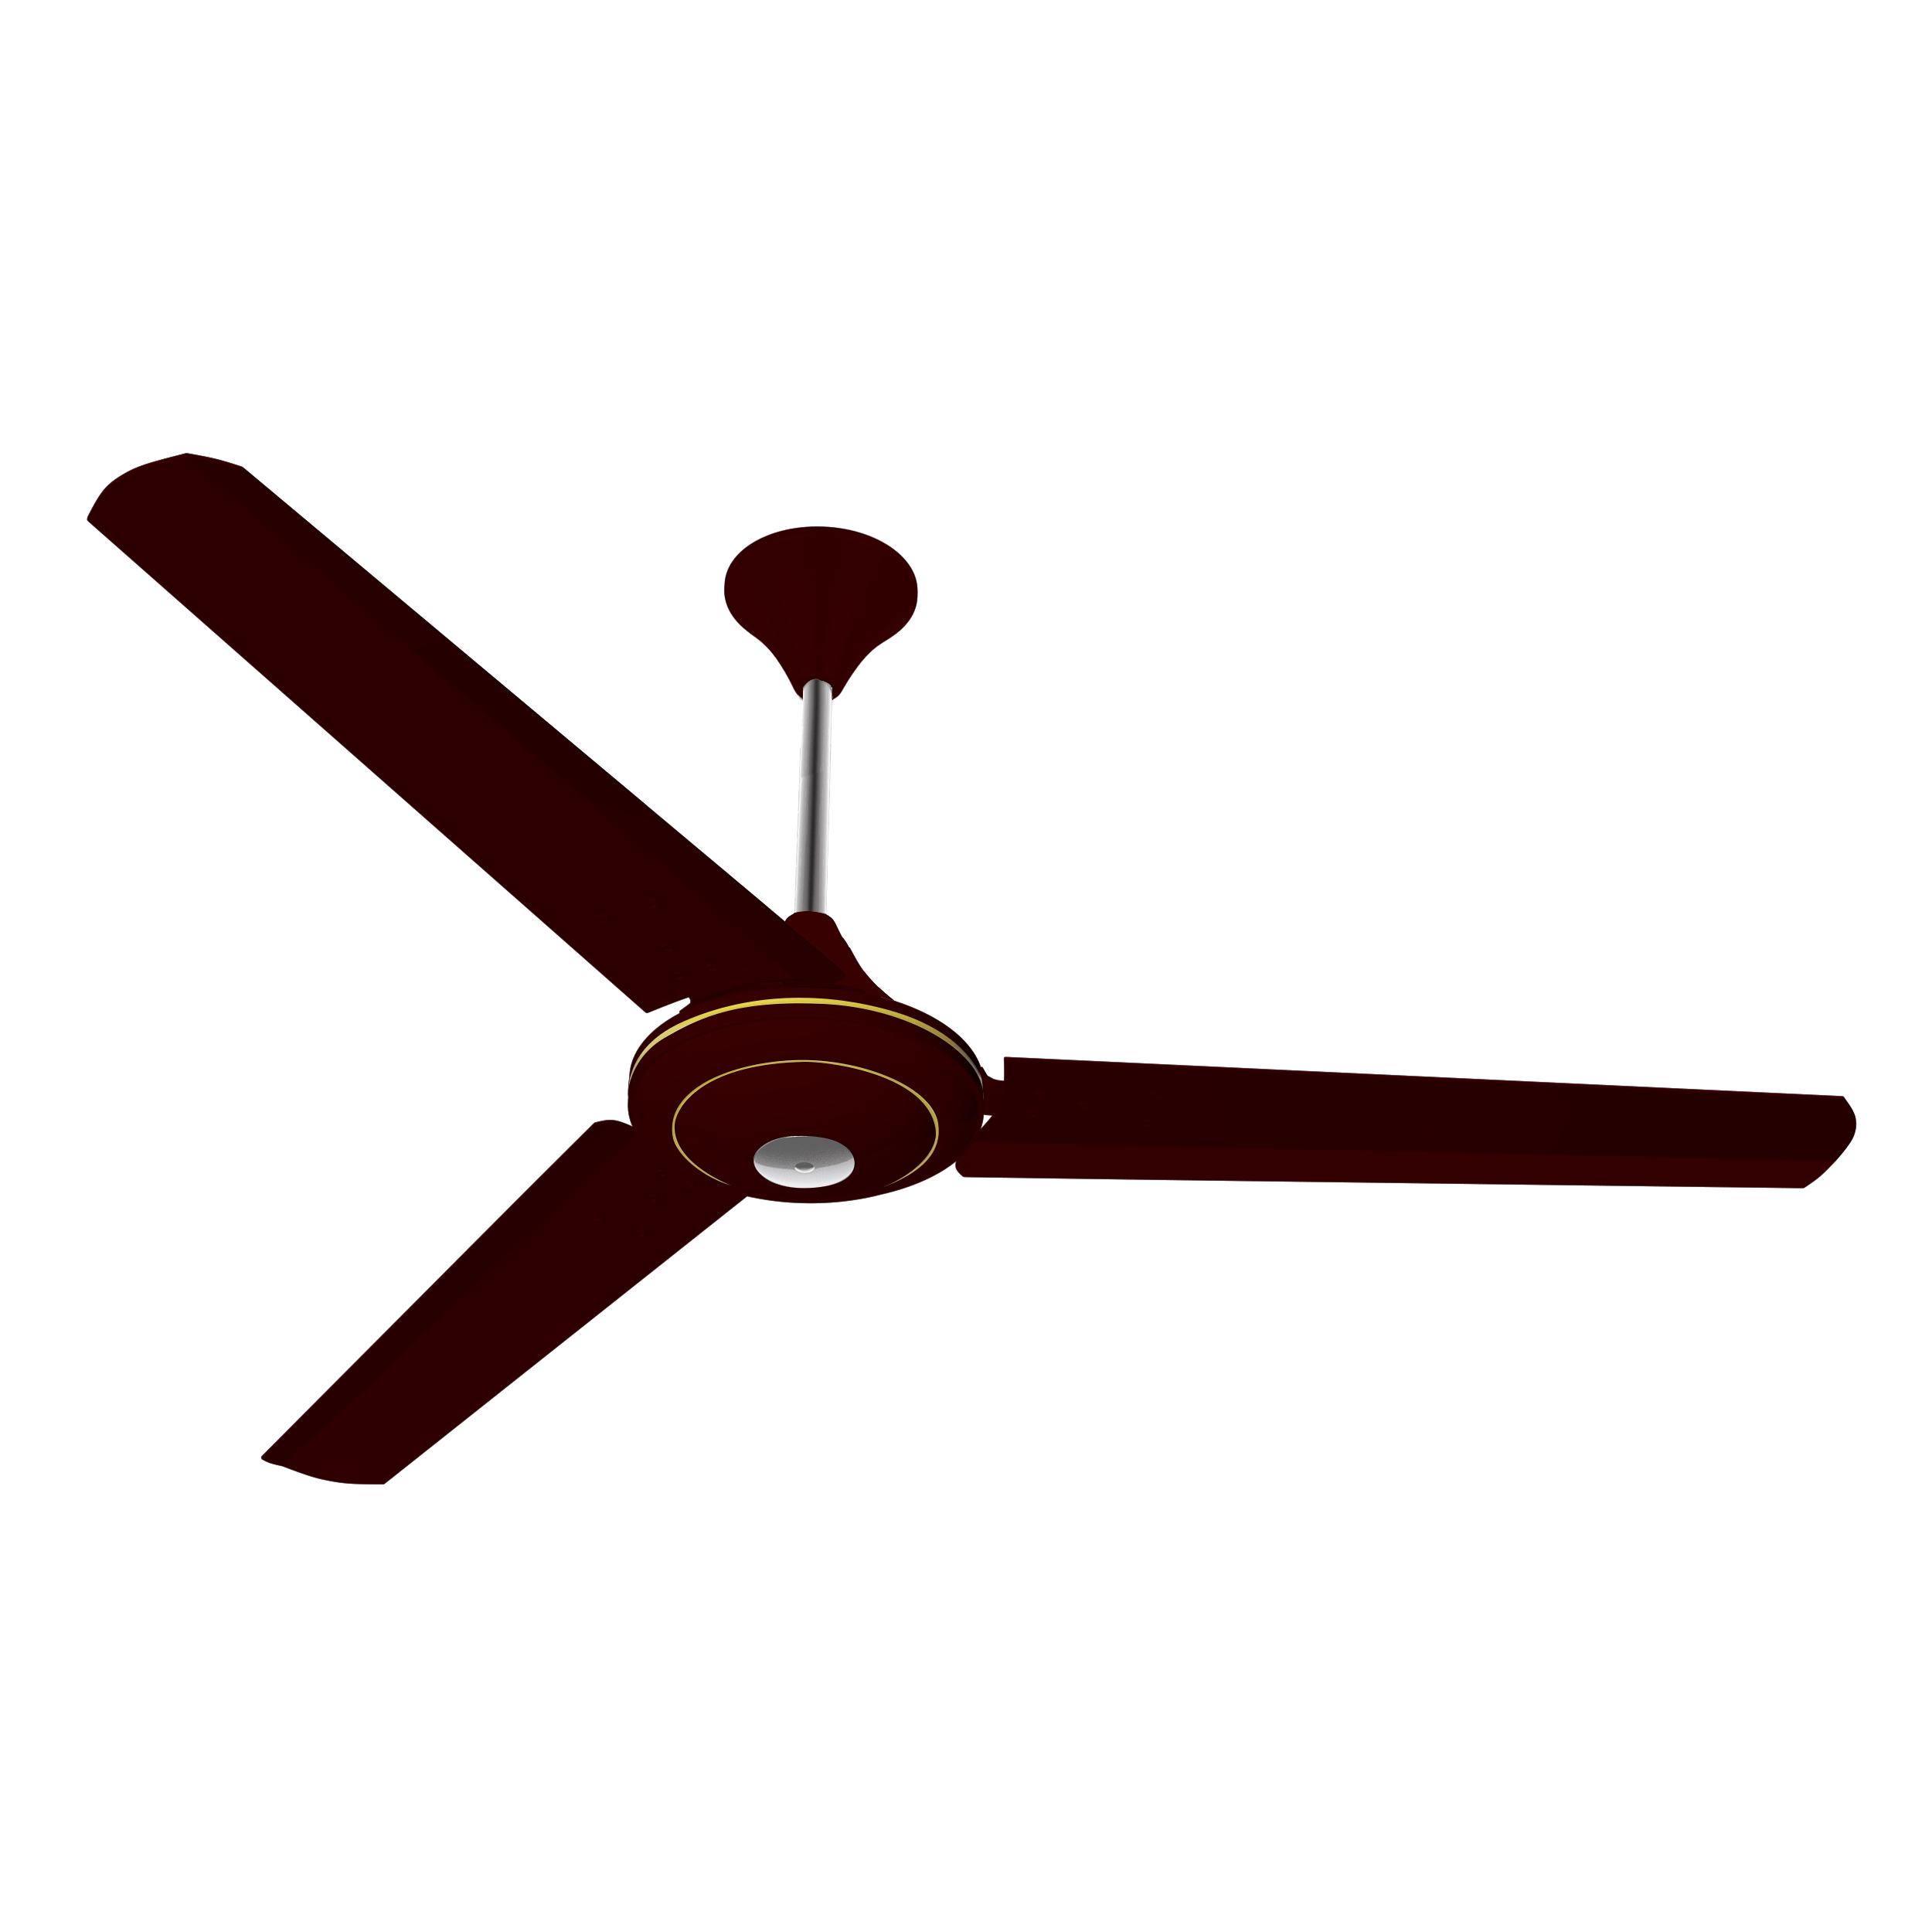 "Conion Ceiling Fan Florence 56"" 3 Blades (Brilliant Maroon)"